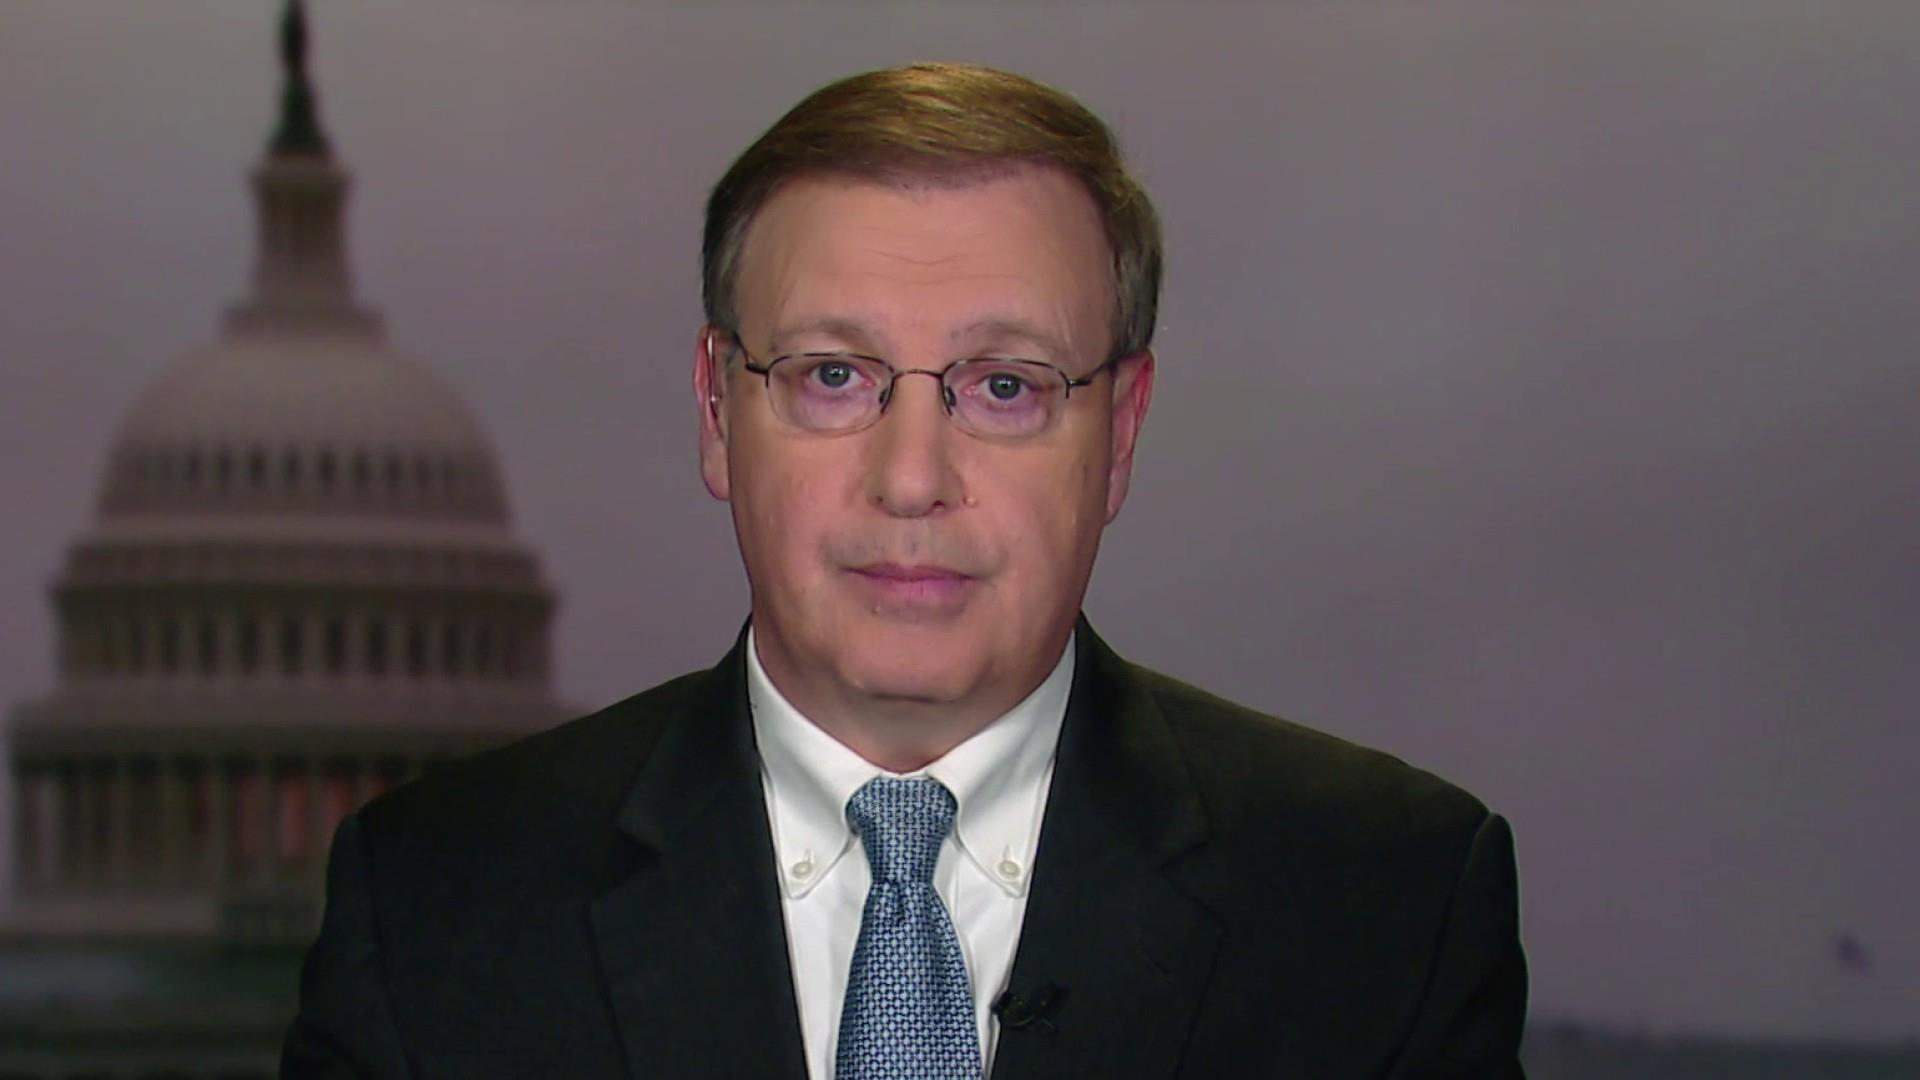 Chuck Rosenberg on not charging a sitting president while in office: 'It's not law, it's just policy'